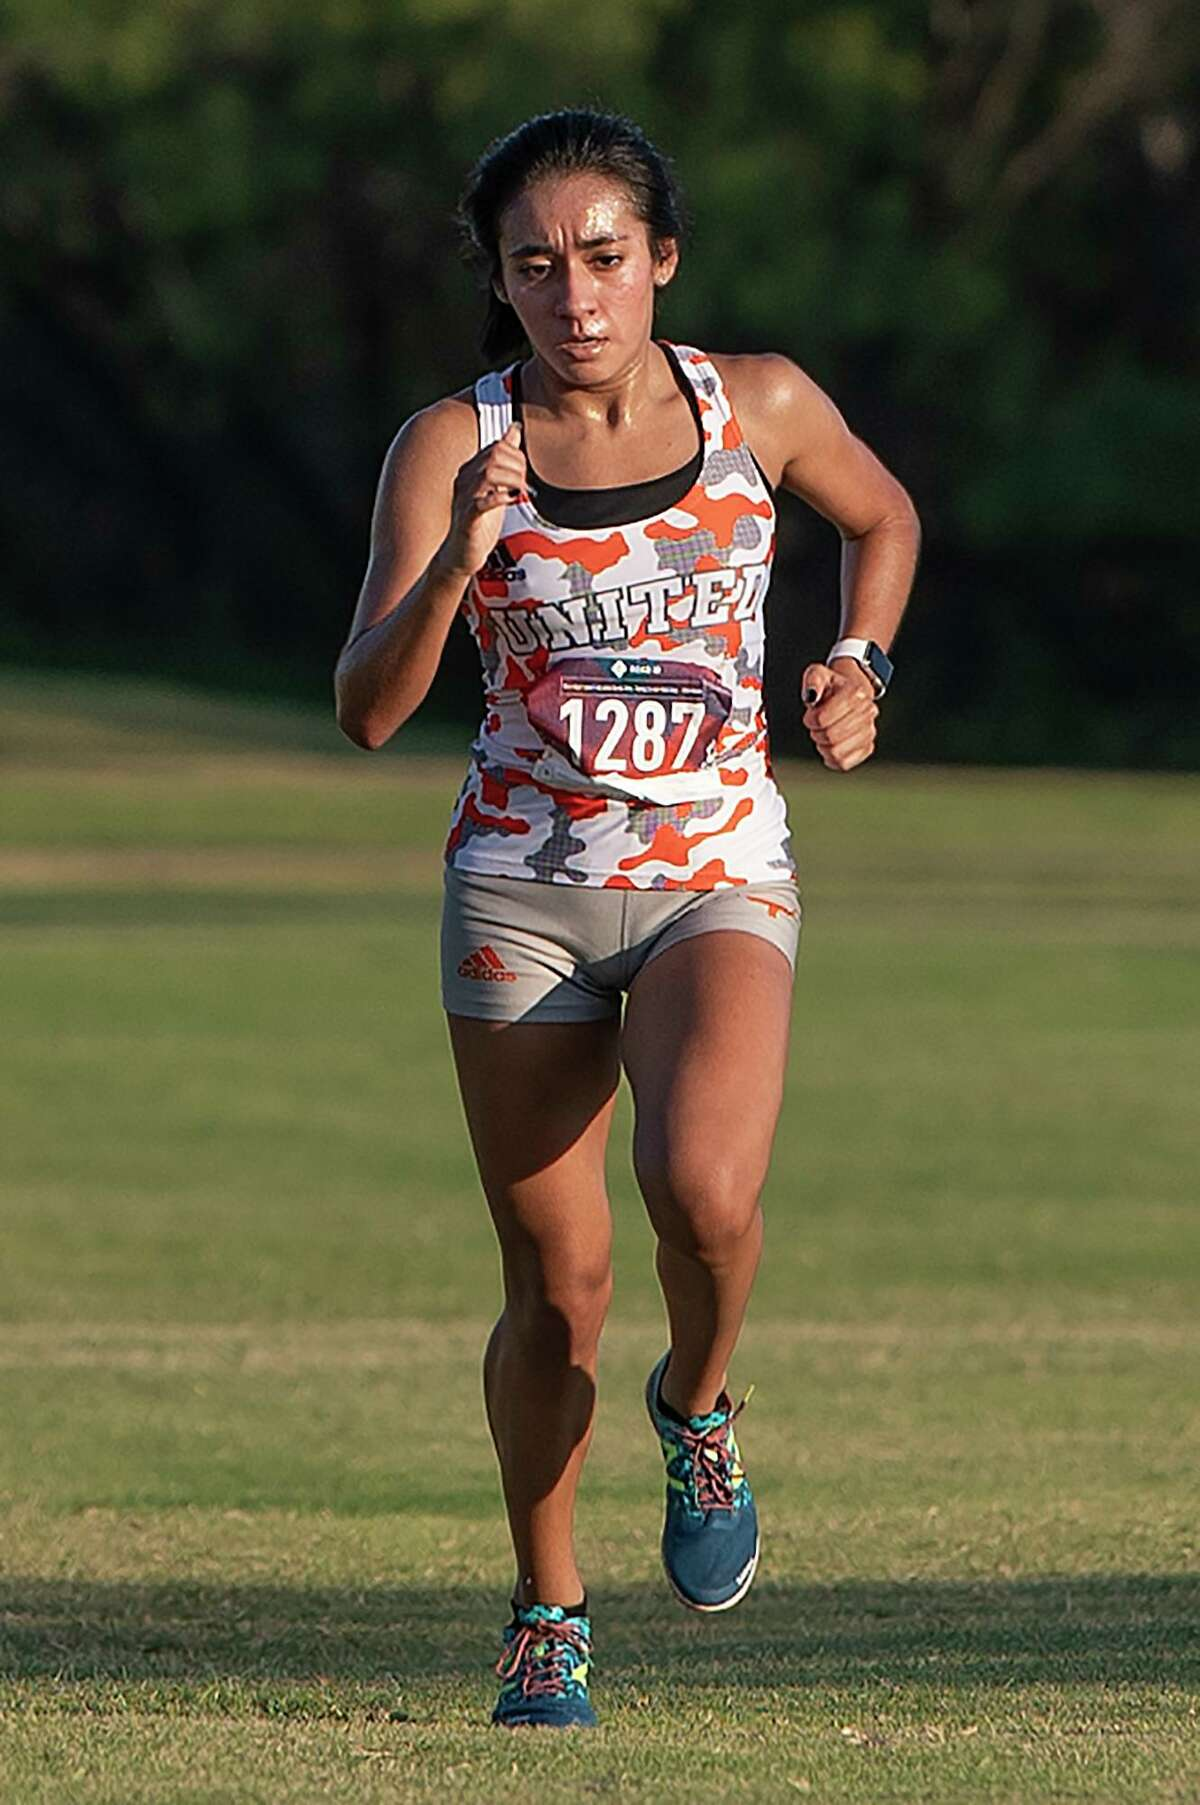 United's Valerie Garcia has won each of the three meets she has competed in to start her senior season.